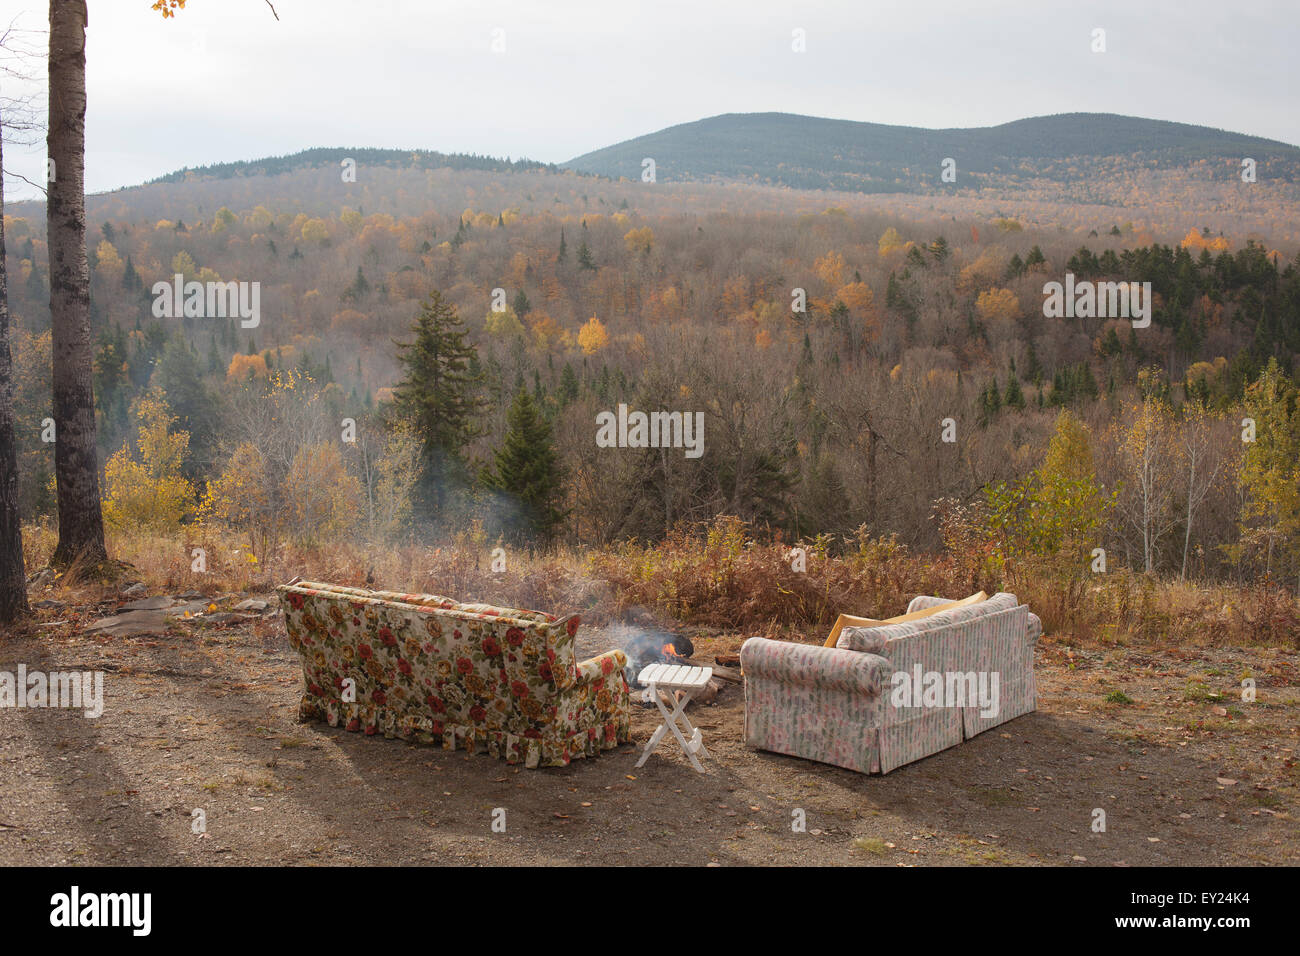 Two sofas and campfire with autumn forest view, Maine, USA - Stock Image